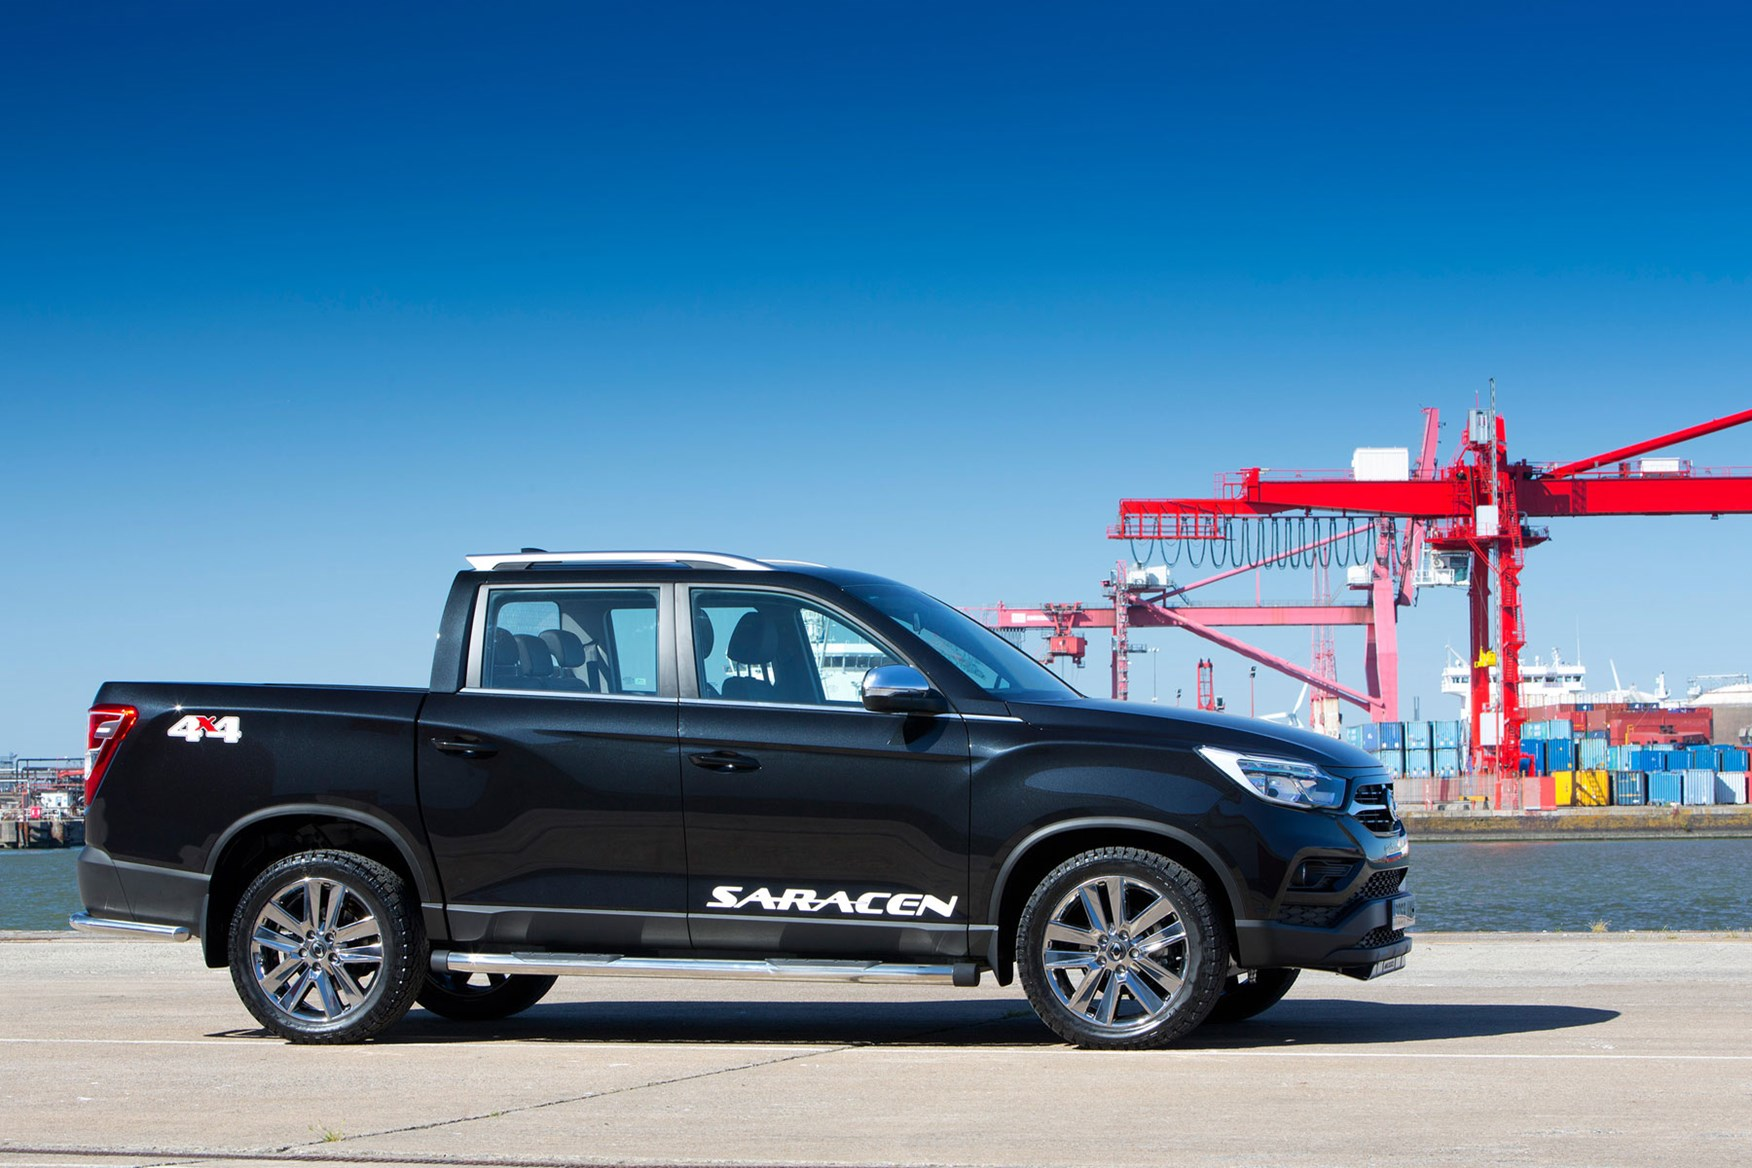 SsangYong Musso (2018-on) review, Saracen, side view, black